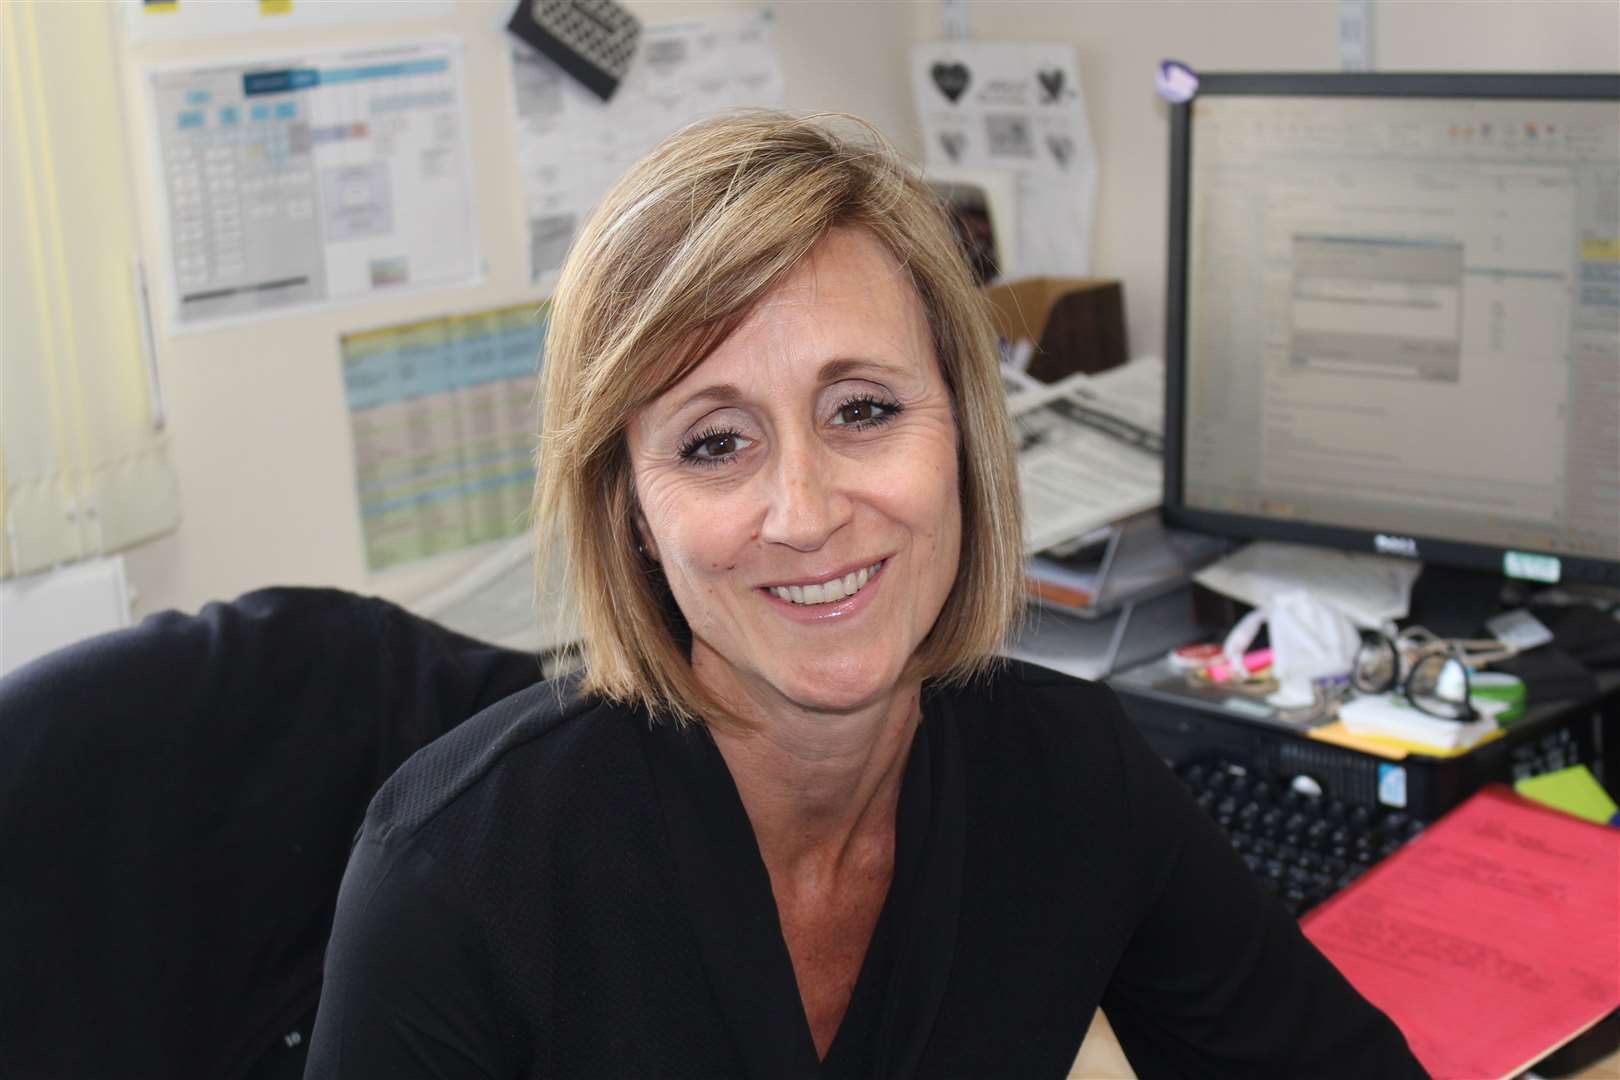 Karen McGuire, who has been appointed as the new Deputy Chief Nurse, Operations and Patient Experience, at Lynn's Queen Elizabeth Hospital. (43946895)